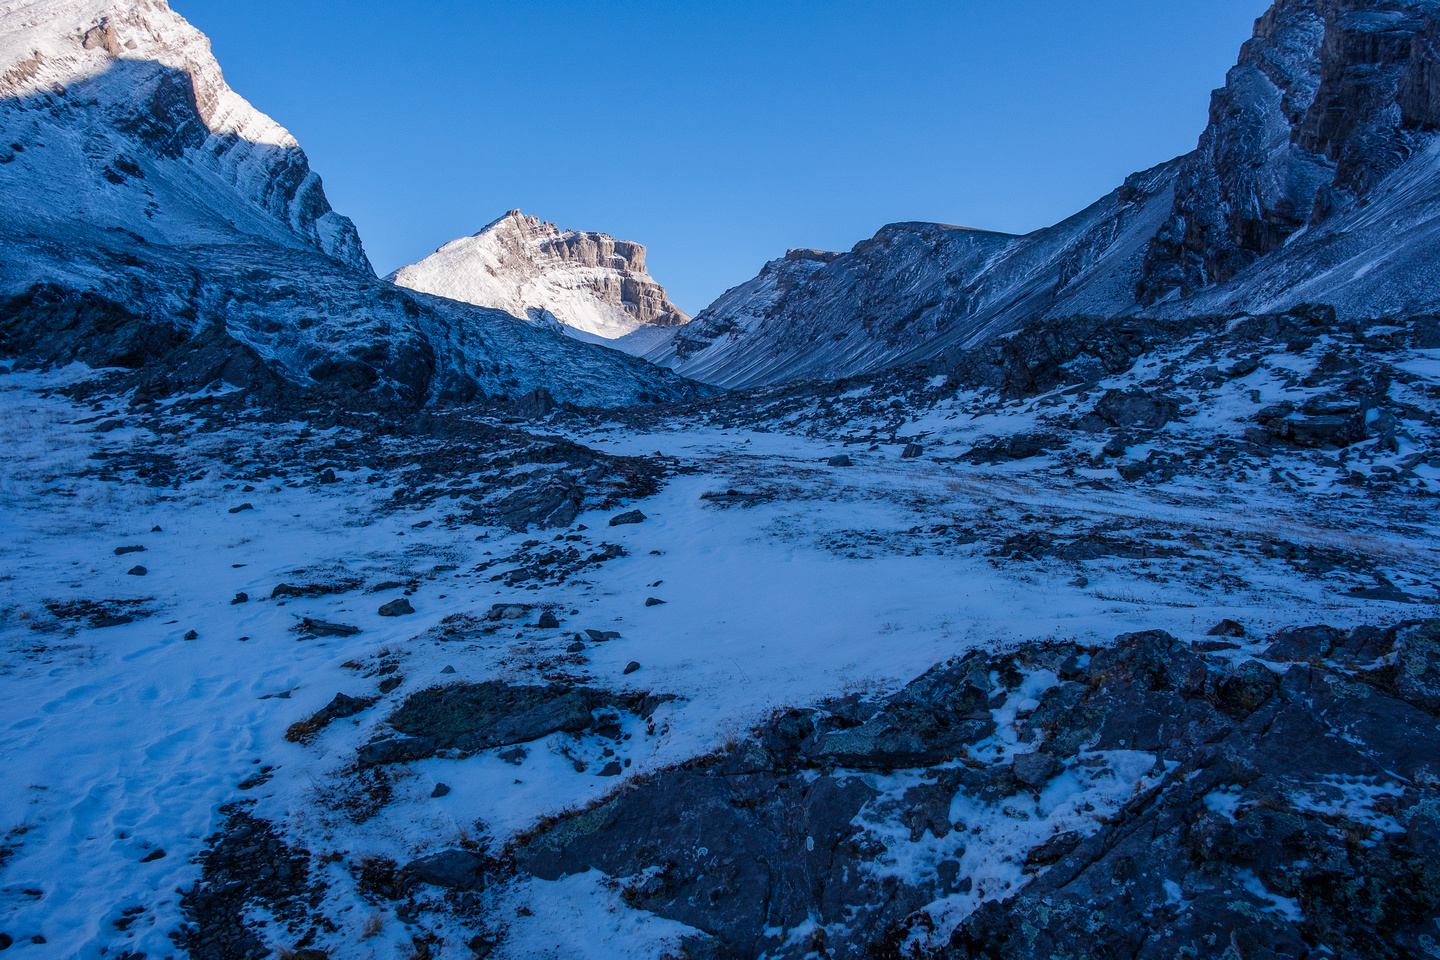 Ascending to the upper Headwall Lake. The Fortress and South Outlier visible now.